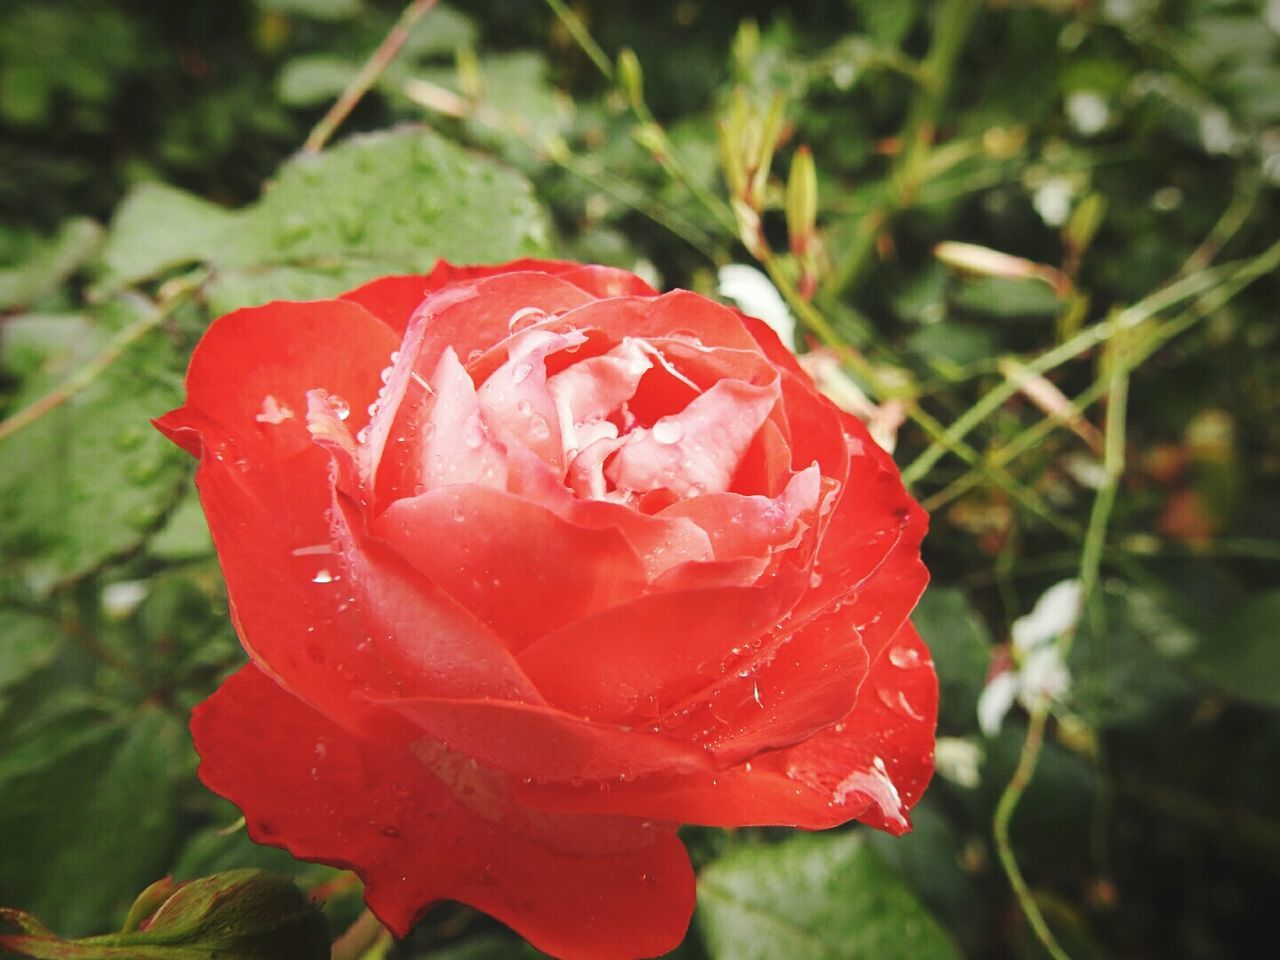 beauty in nature, flower, nature, growth, petal, drop, freshness, red, rose - flower, fragility, wet, plant, flower head, water, close-up, outdoors, day, no people, blooming